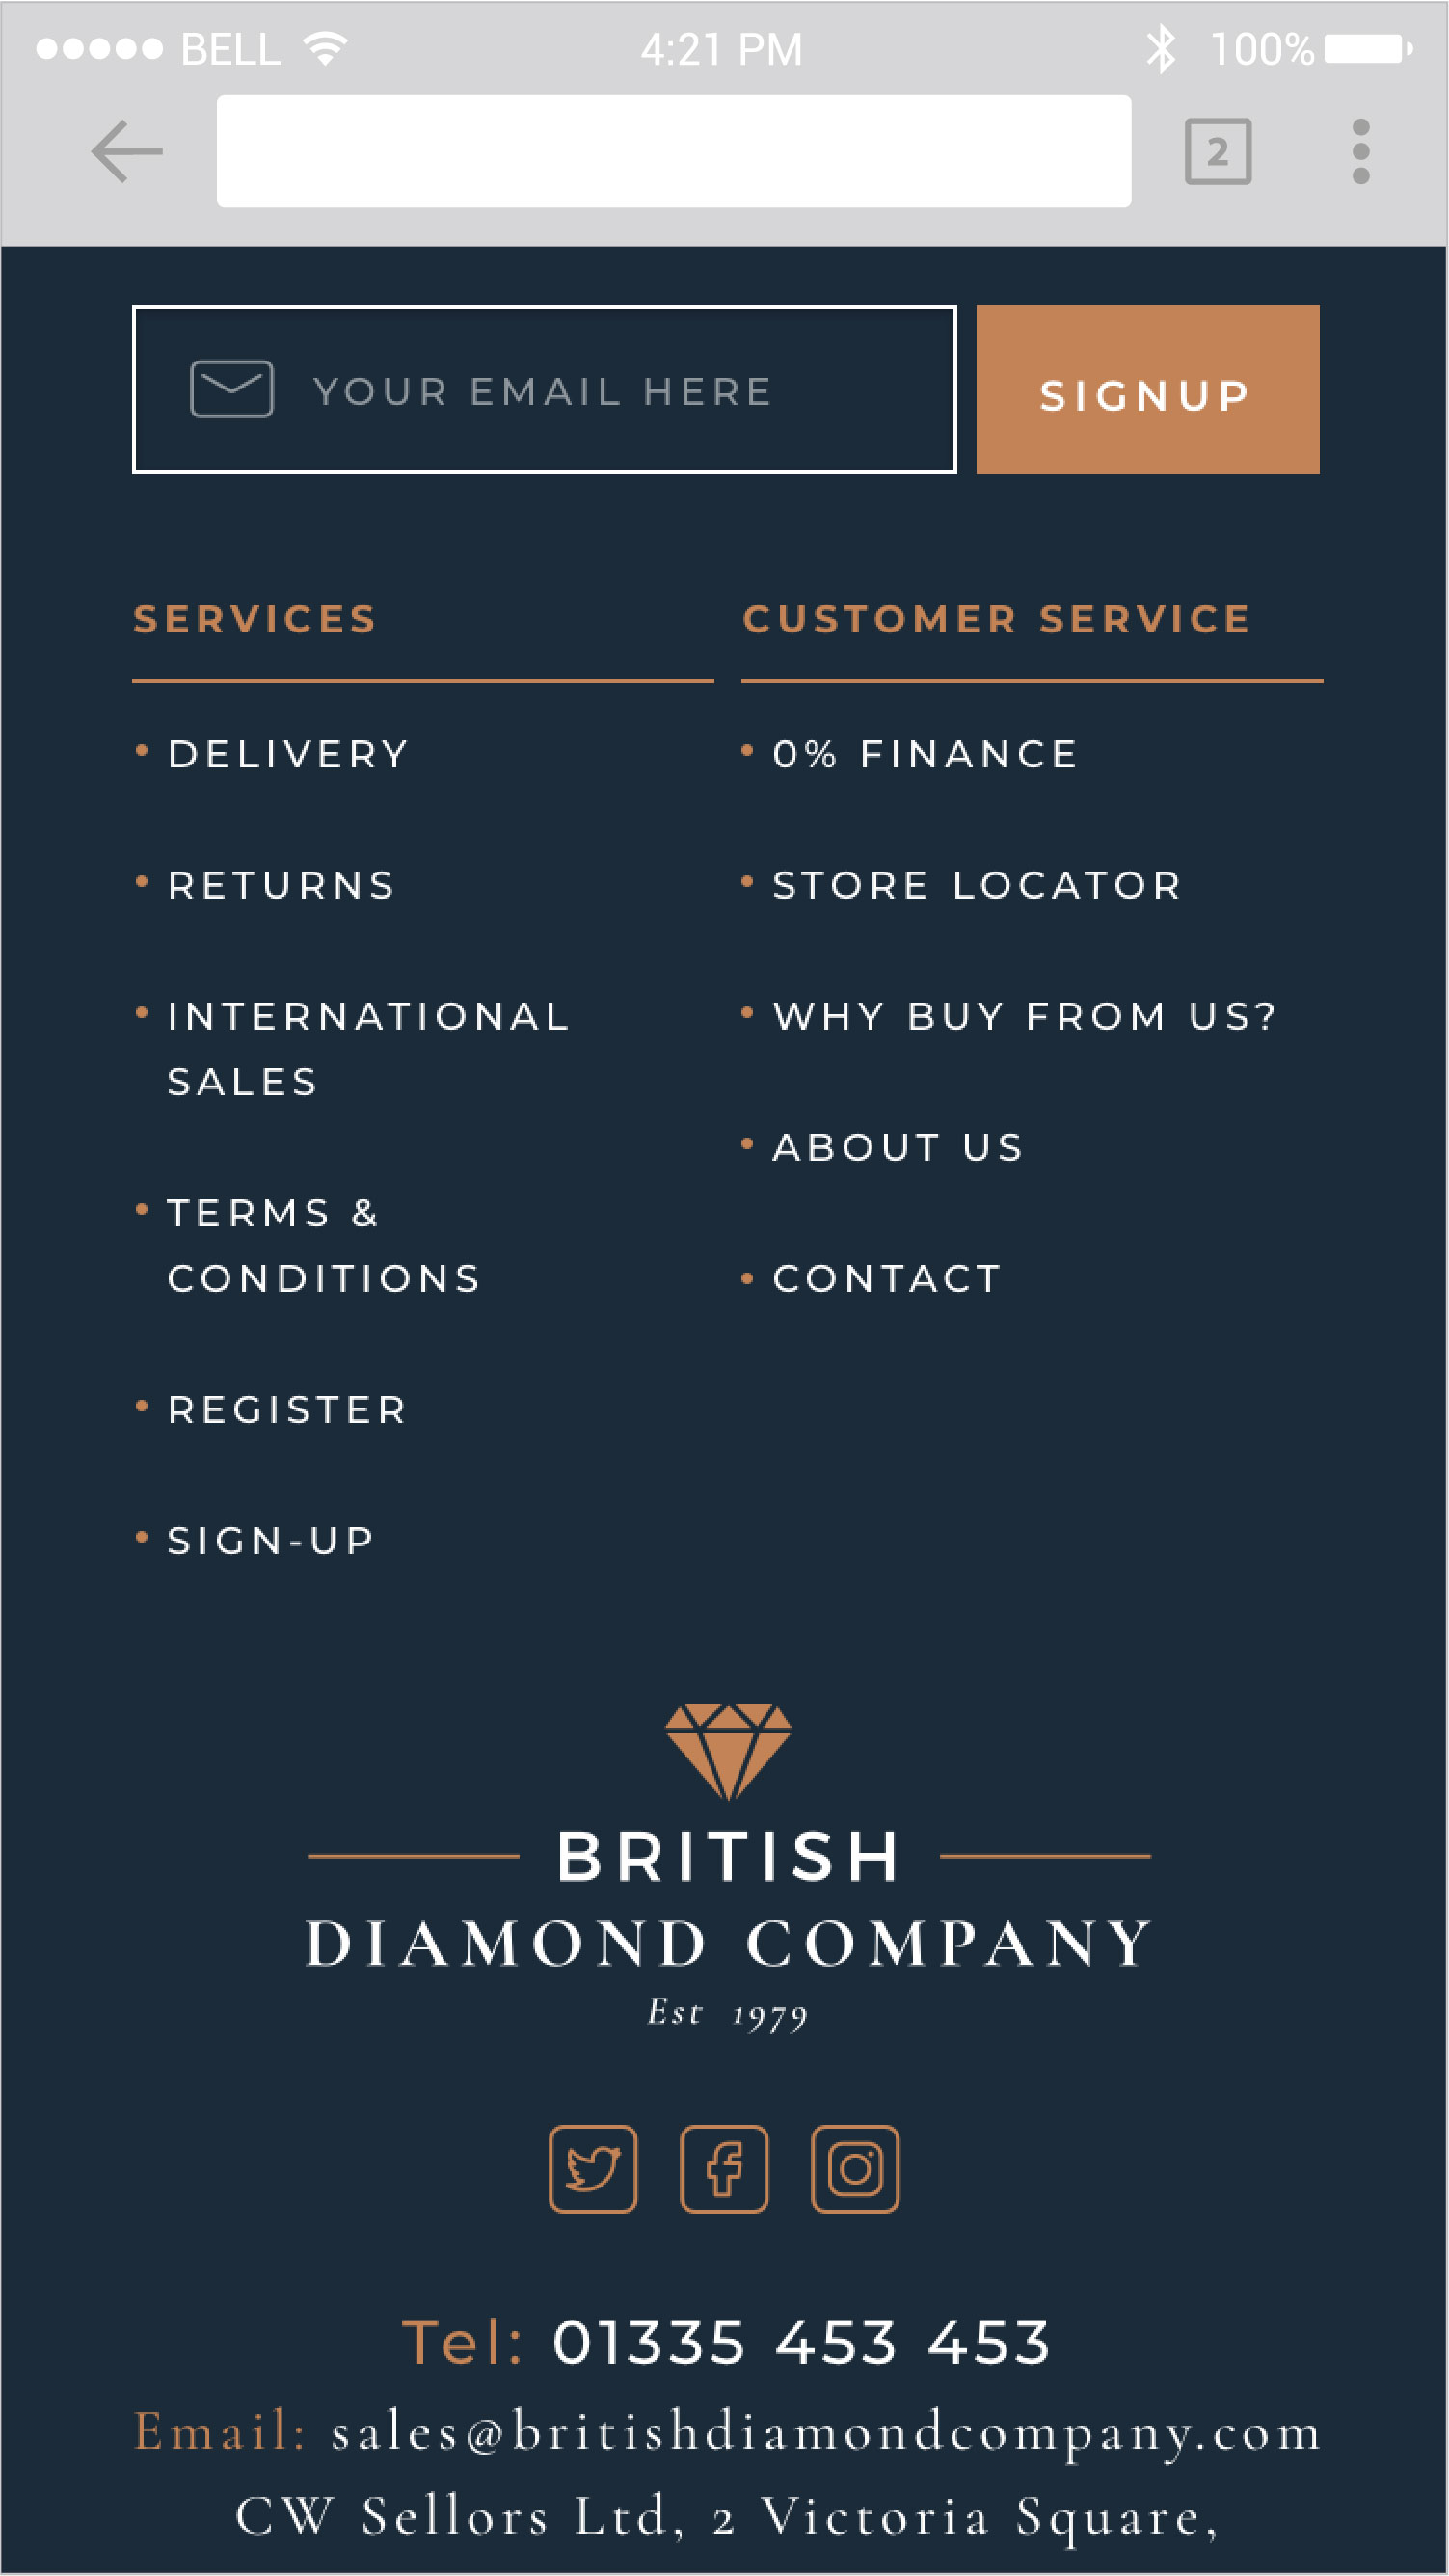 The British Diamond Company Footer